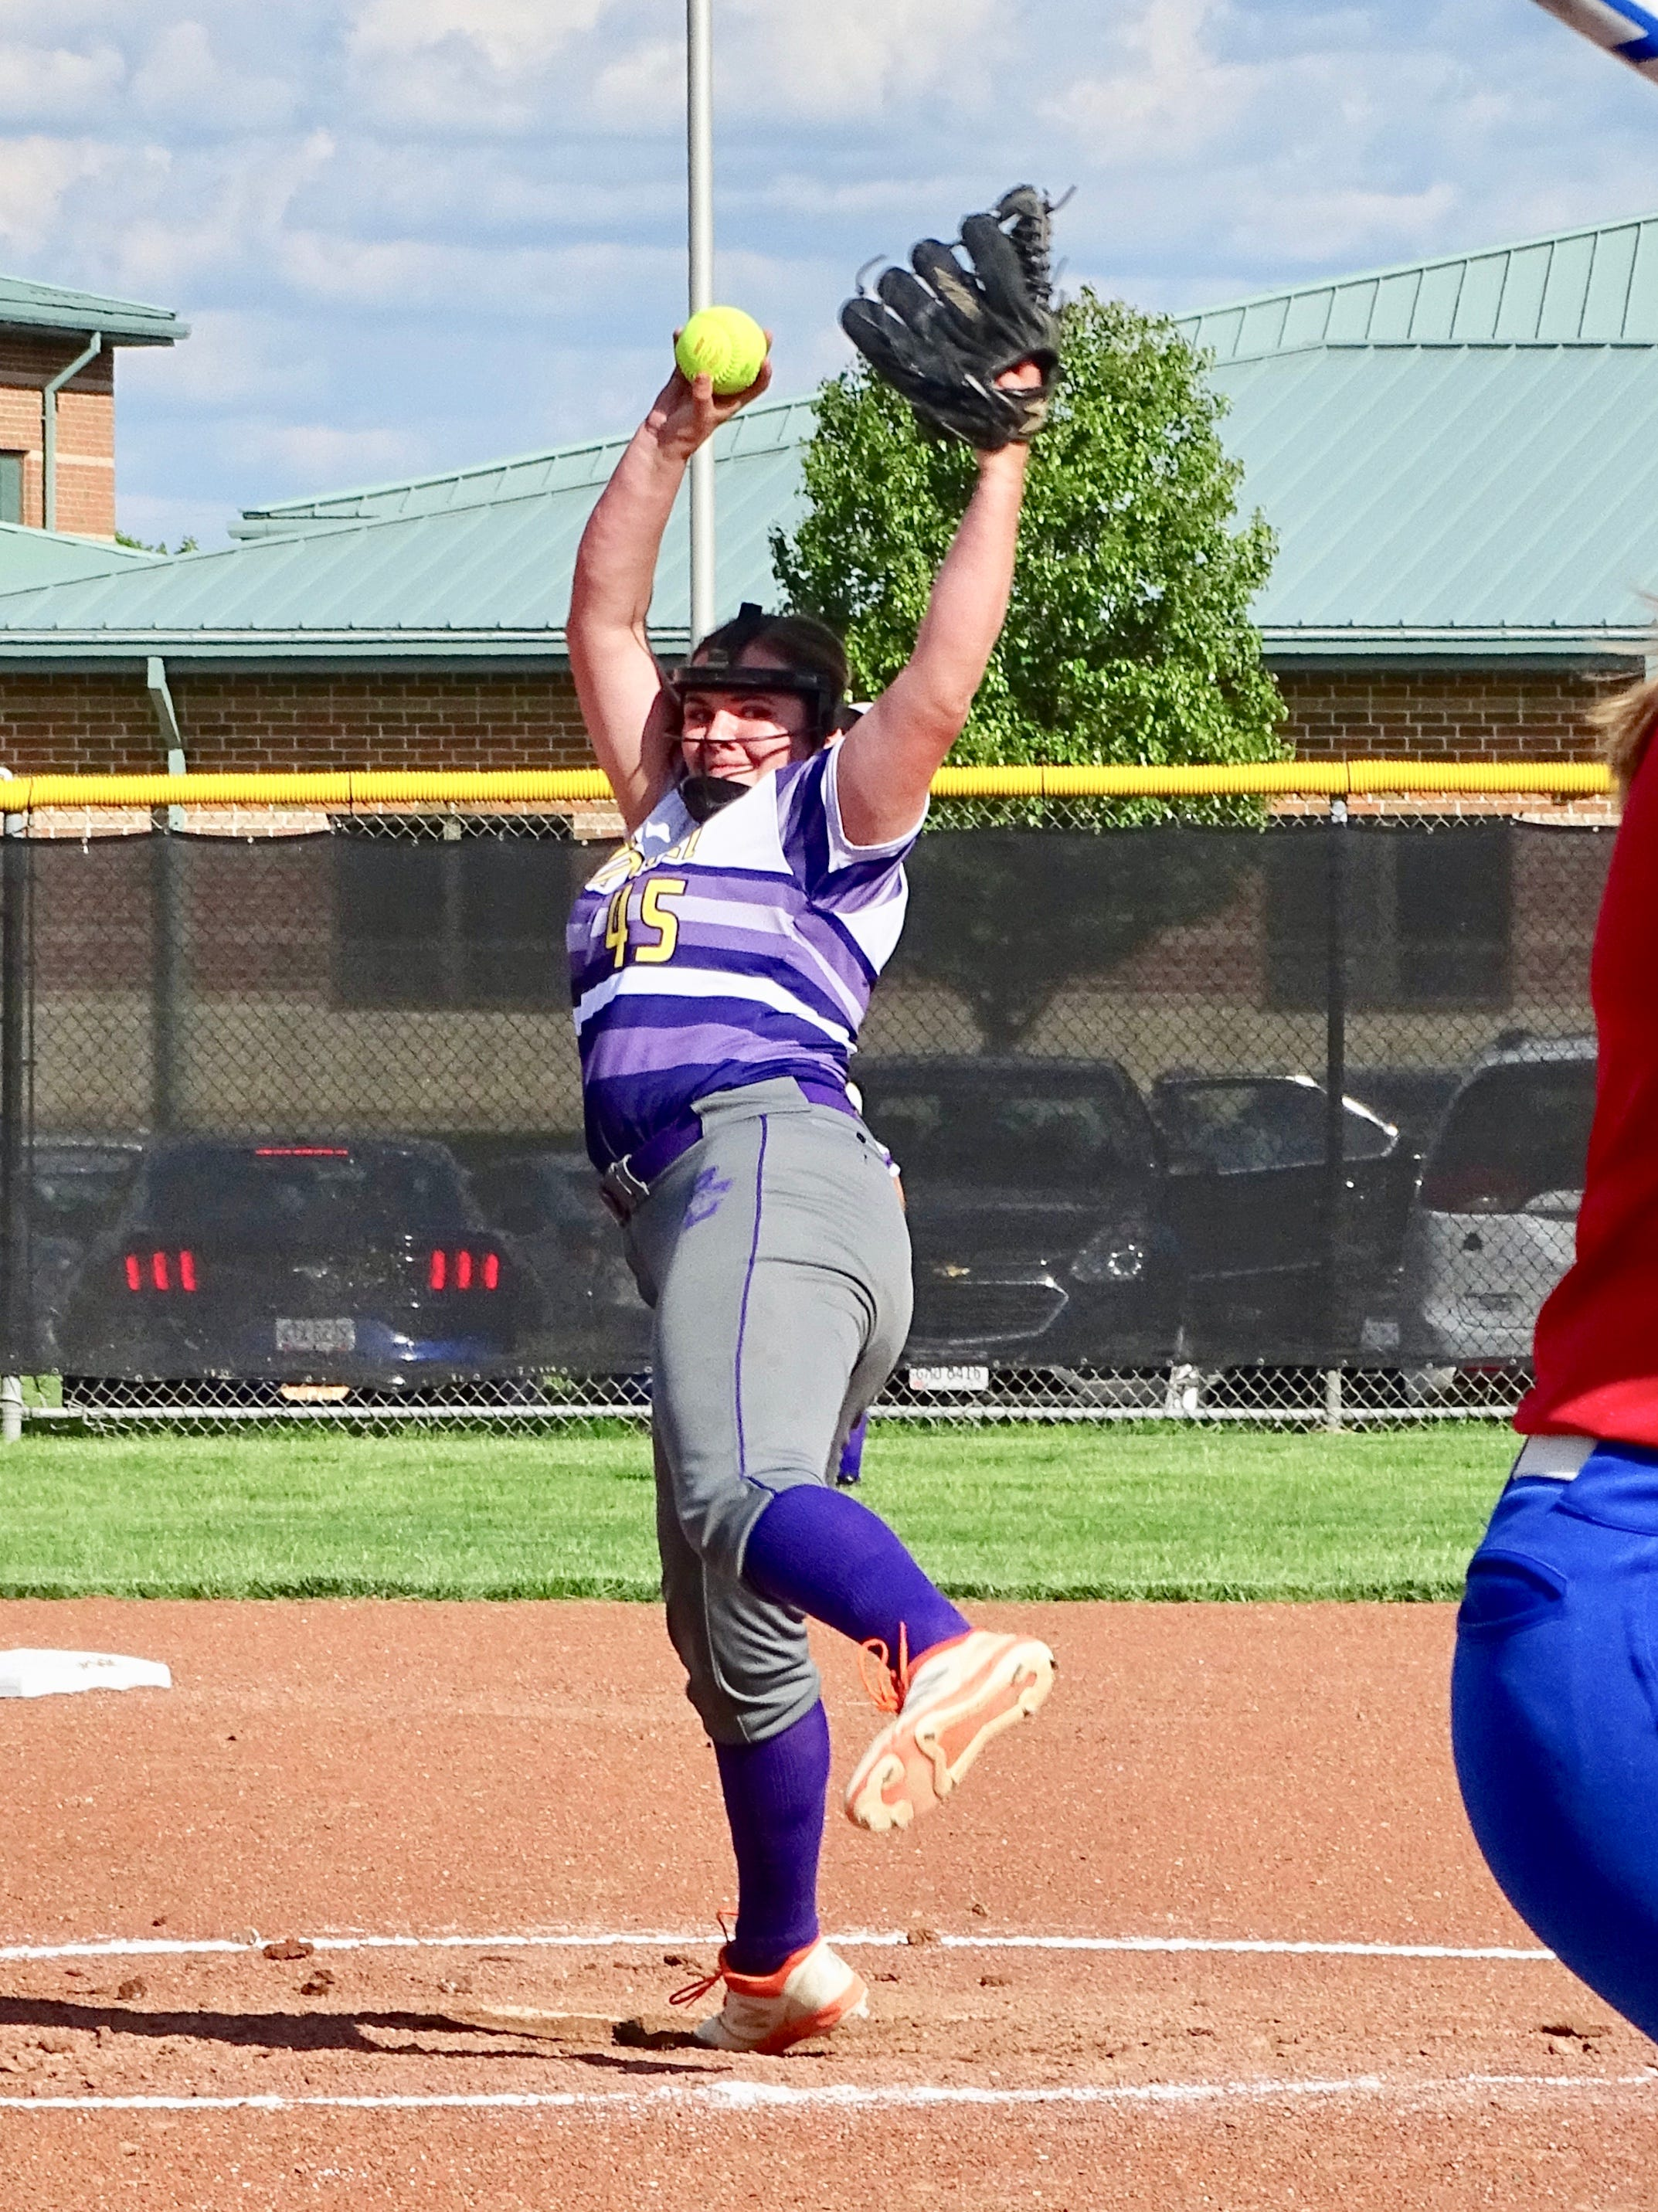 Bloom-Carroll freshman pitcher Lexi Paulsen gave up six hits and struck out 12 in the Bulldogs' 10-3 Division II district semifinal win over Licking Valley Tuesday at Pickerington North.